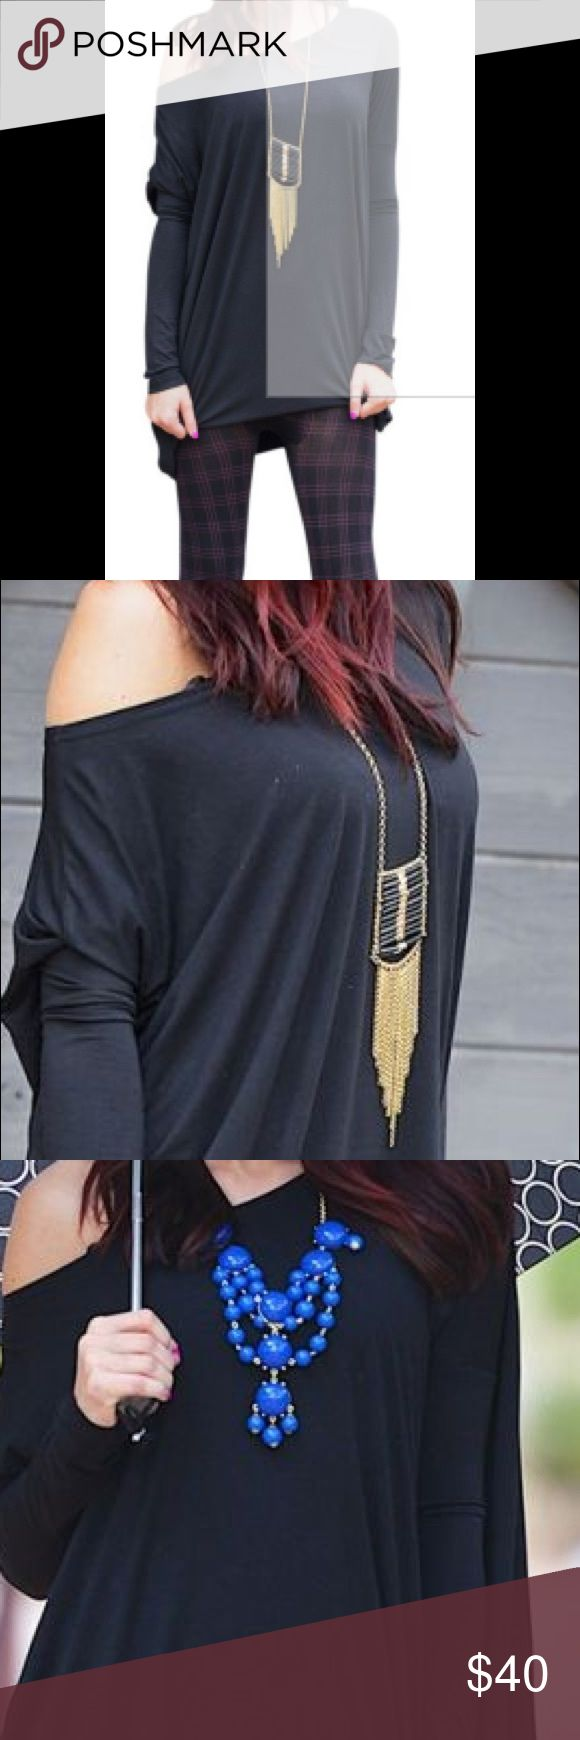 Off shoulder batwing shirt Stylish off shoulder batwing shirt.  Stock photo pictured.  Shirt is new without tags.  Pair with printed leggings or denim Tops Blouses